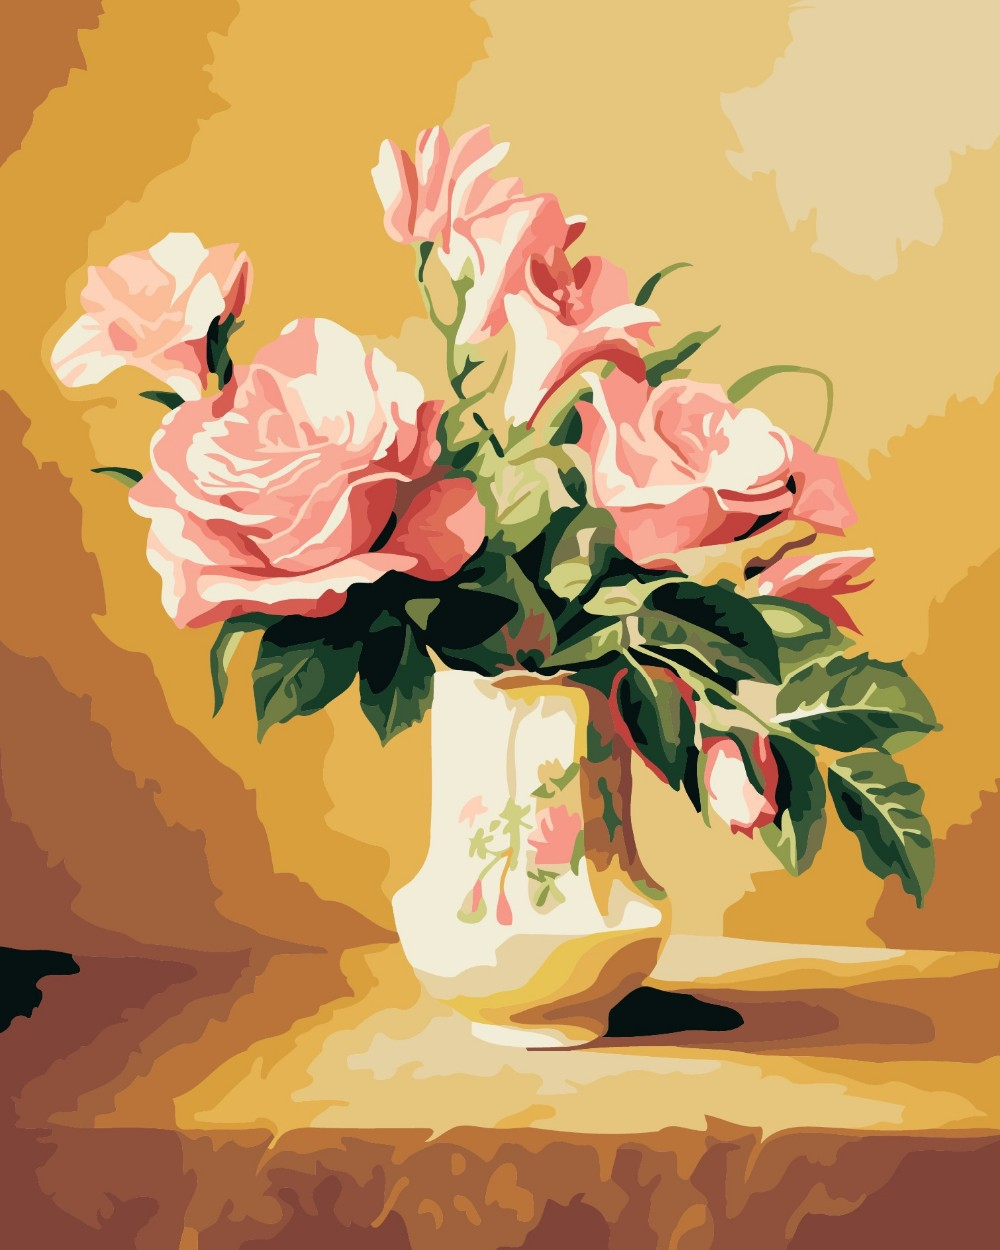 Vivid flower diy digital paint drawing kit oil painting by number vivid flower diy digital paint drawing kit oil painting by number 4050cm on canvas home decor wall poster gift in painting calligraphy from home floridaeventfo Images